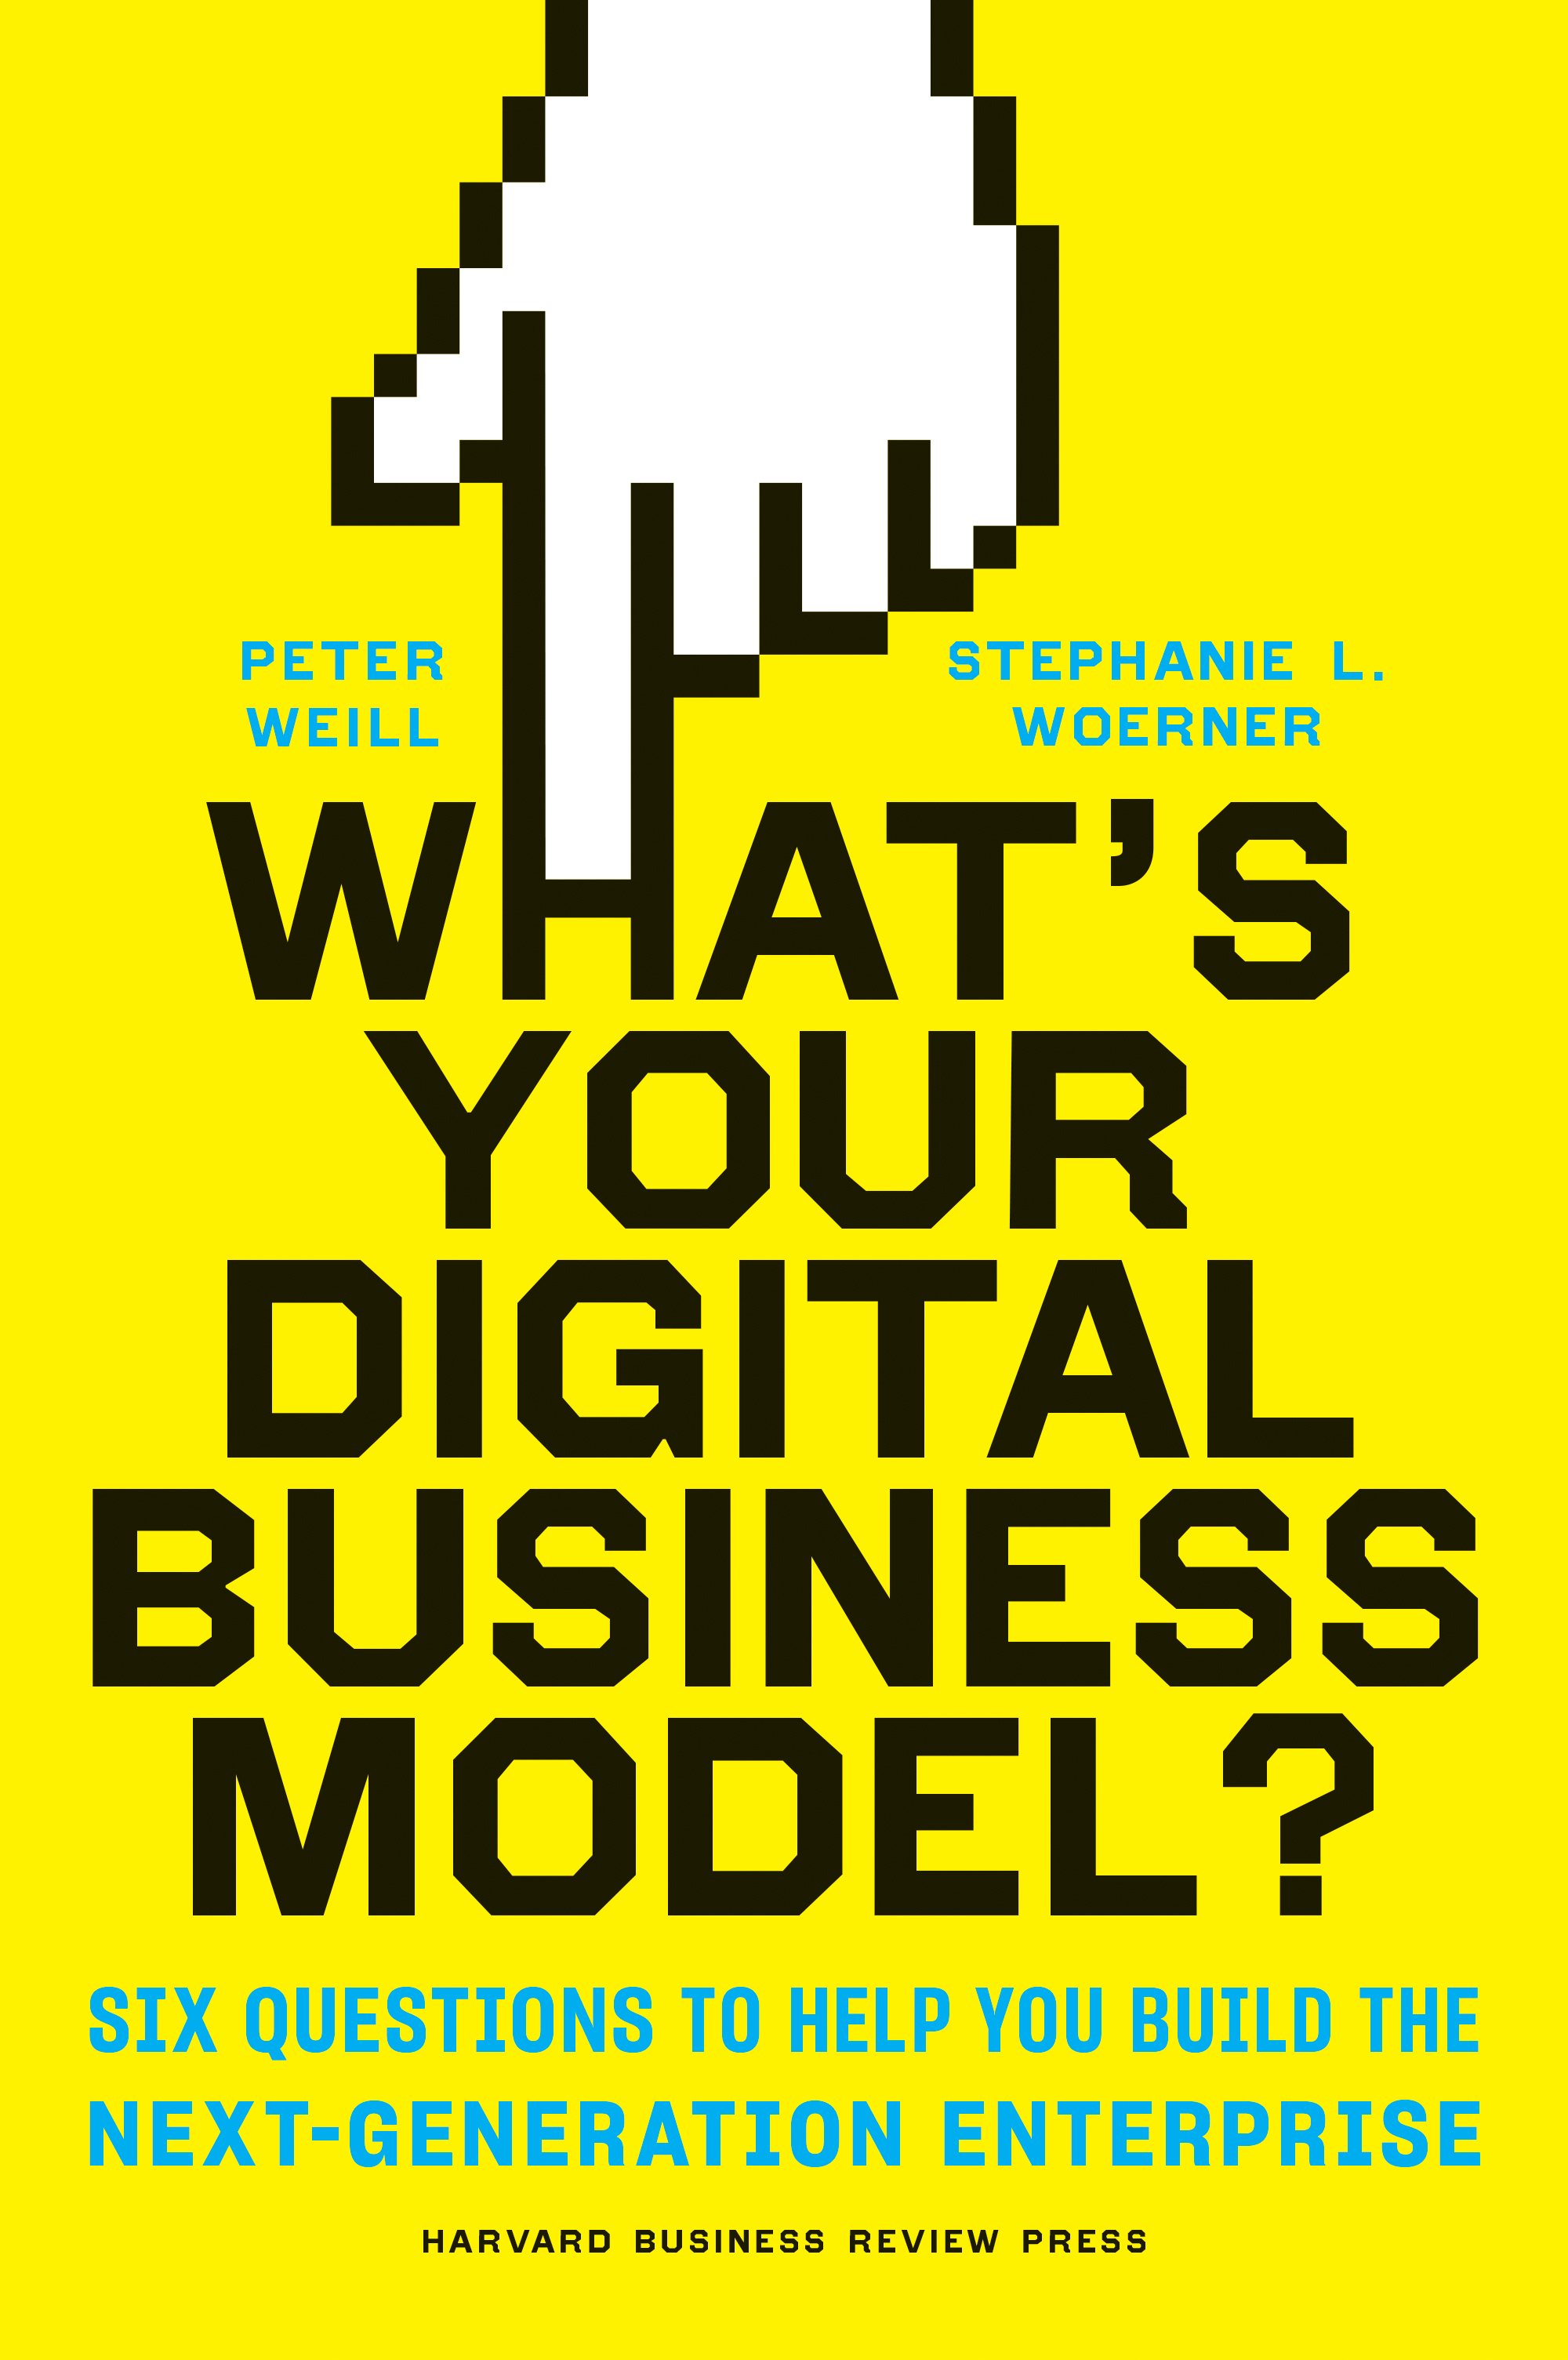 Download Ebook What's Your Digital Business Model? by Peter Weill Pdf